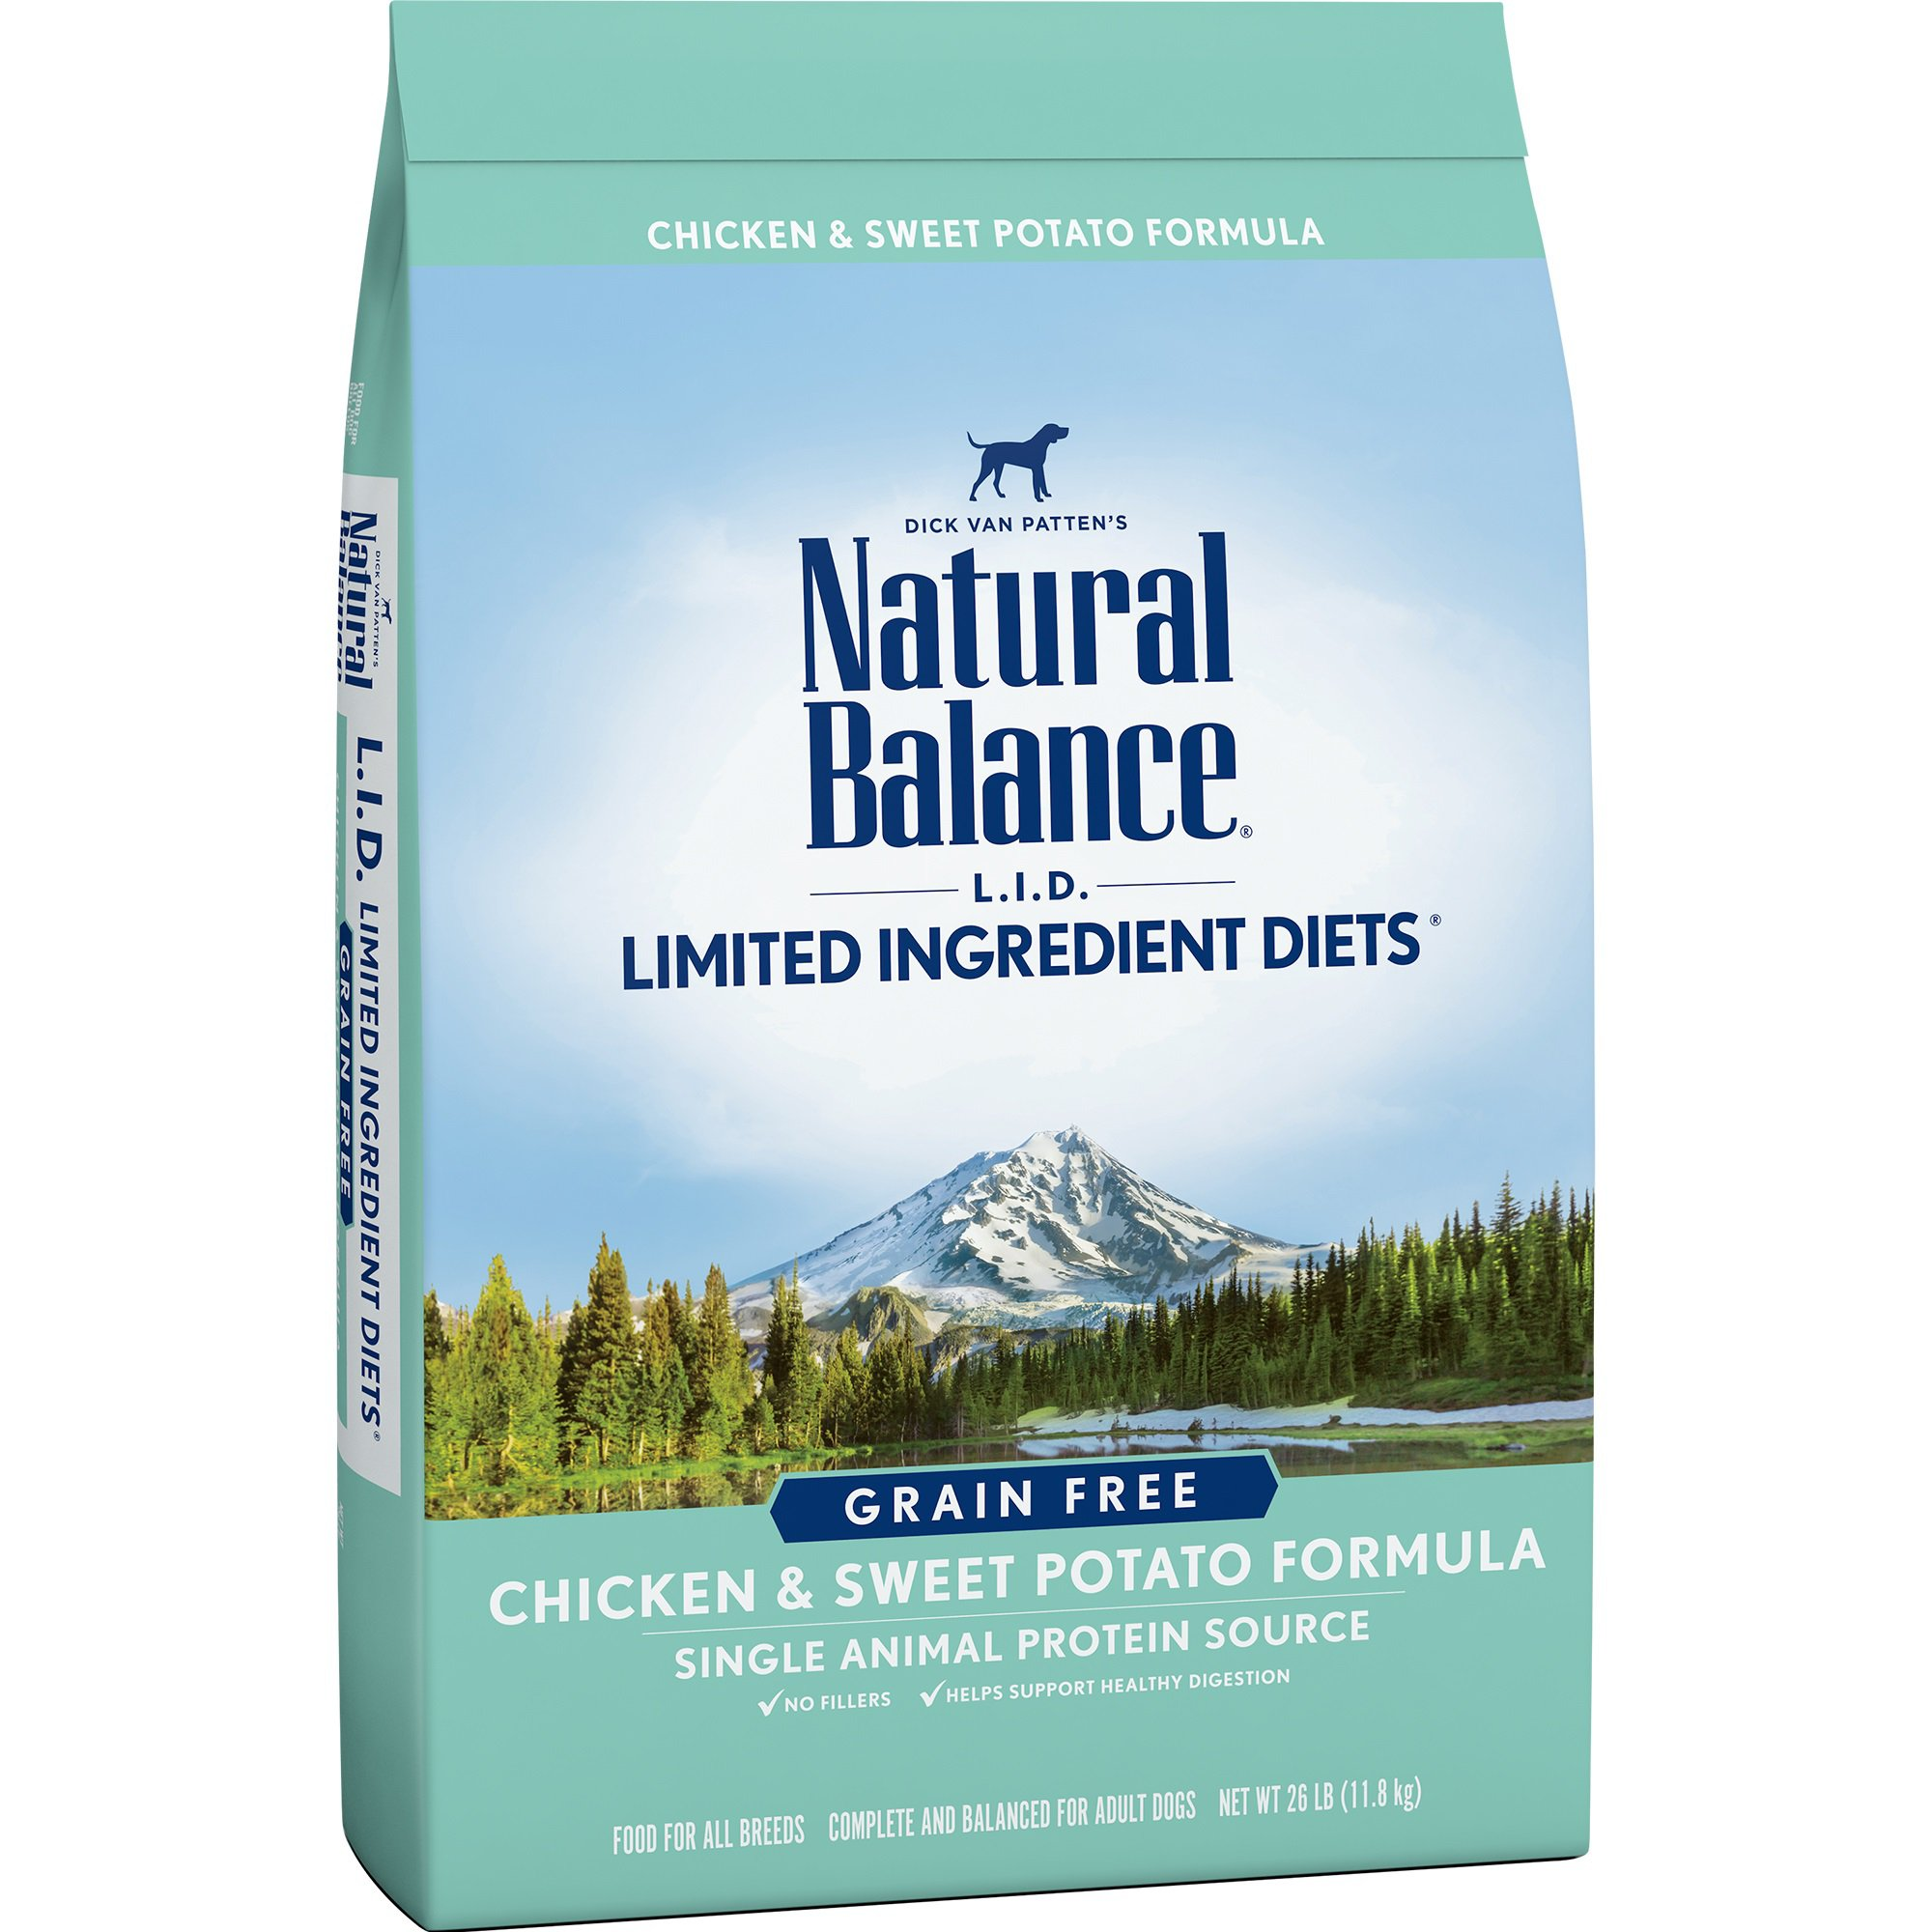 Natural Balance L.I.D. Limited Ingredient Diets Chicken & Sweet Potato Dog Food, 26 lbs.